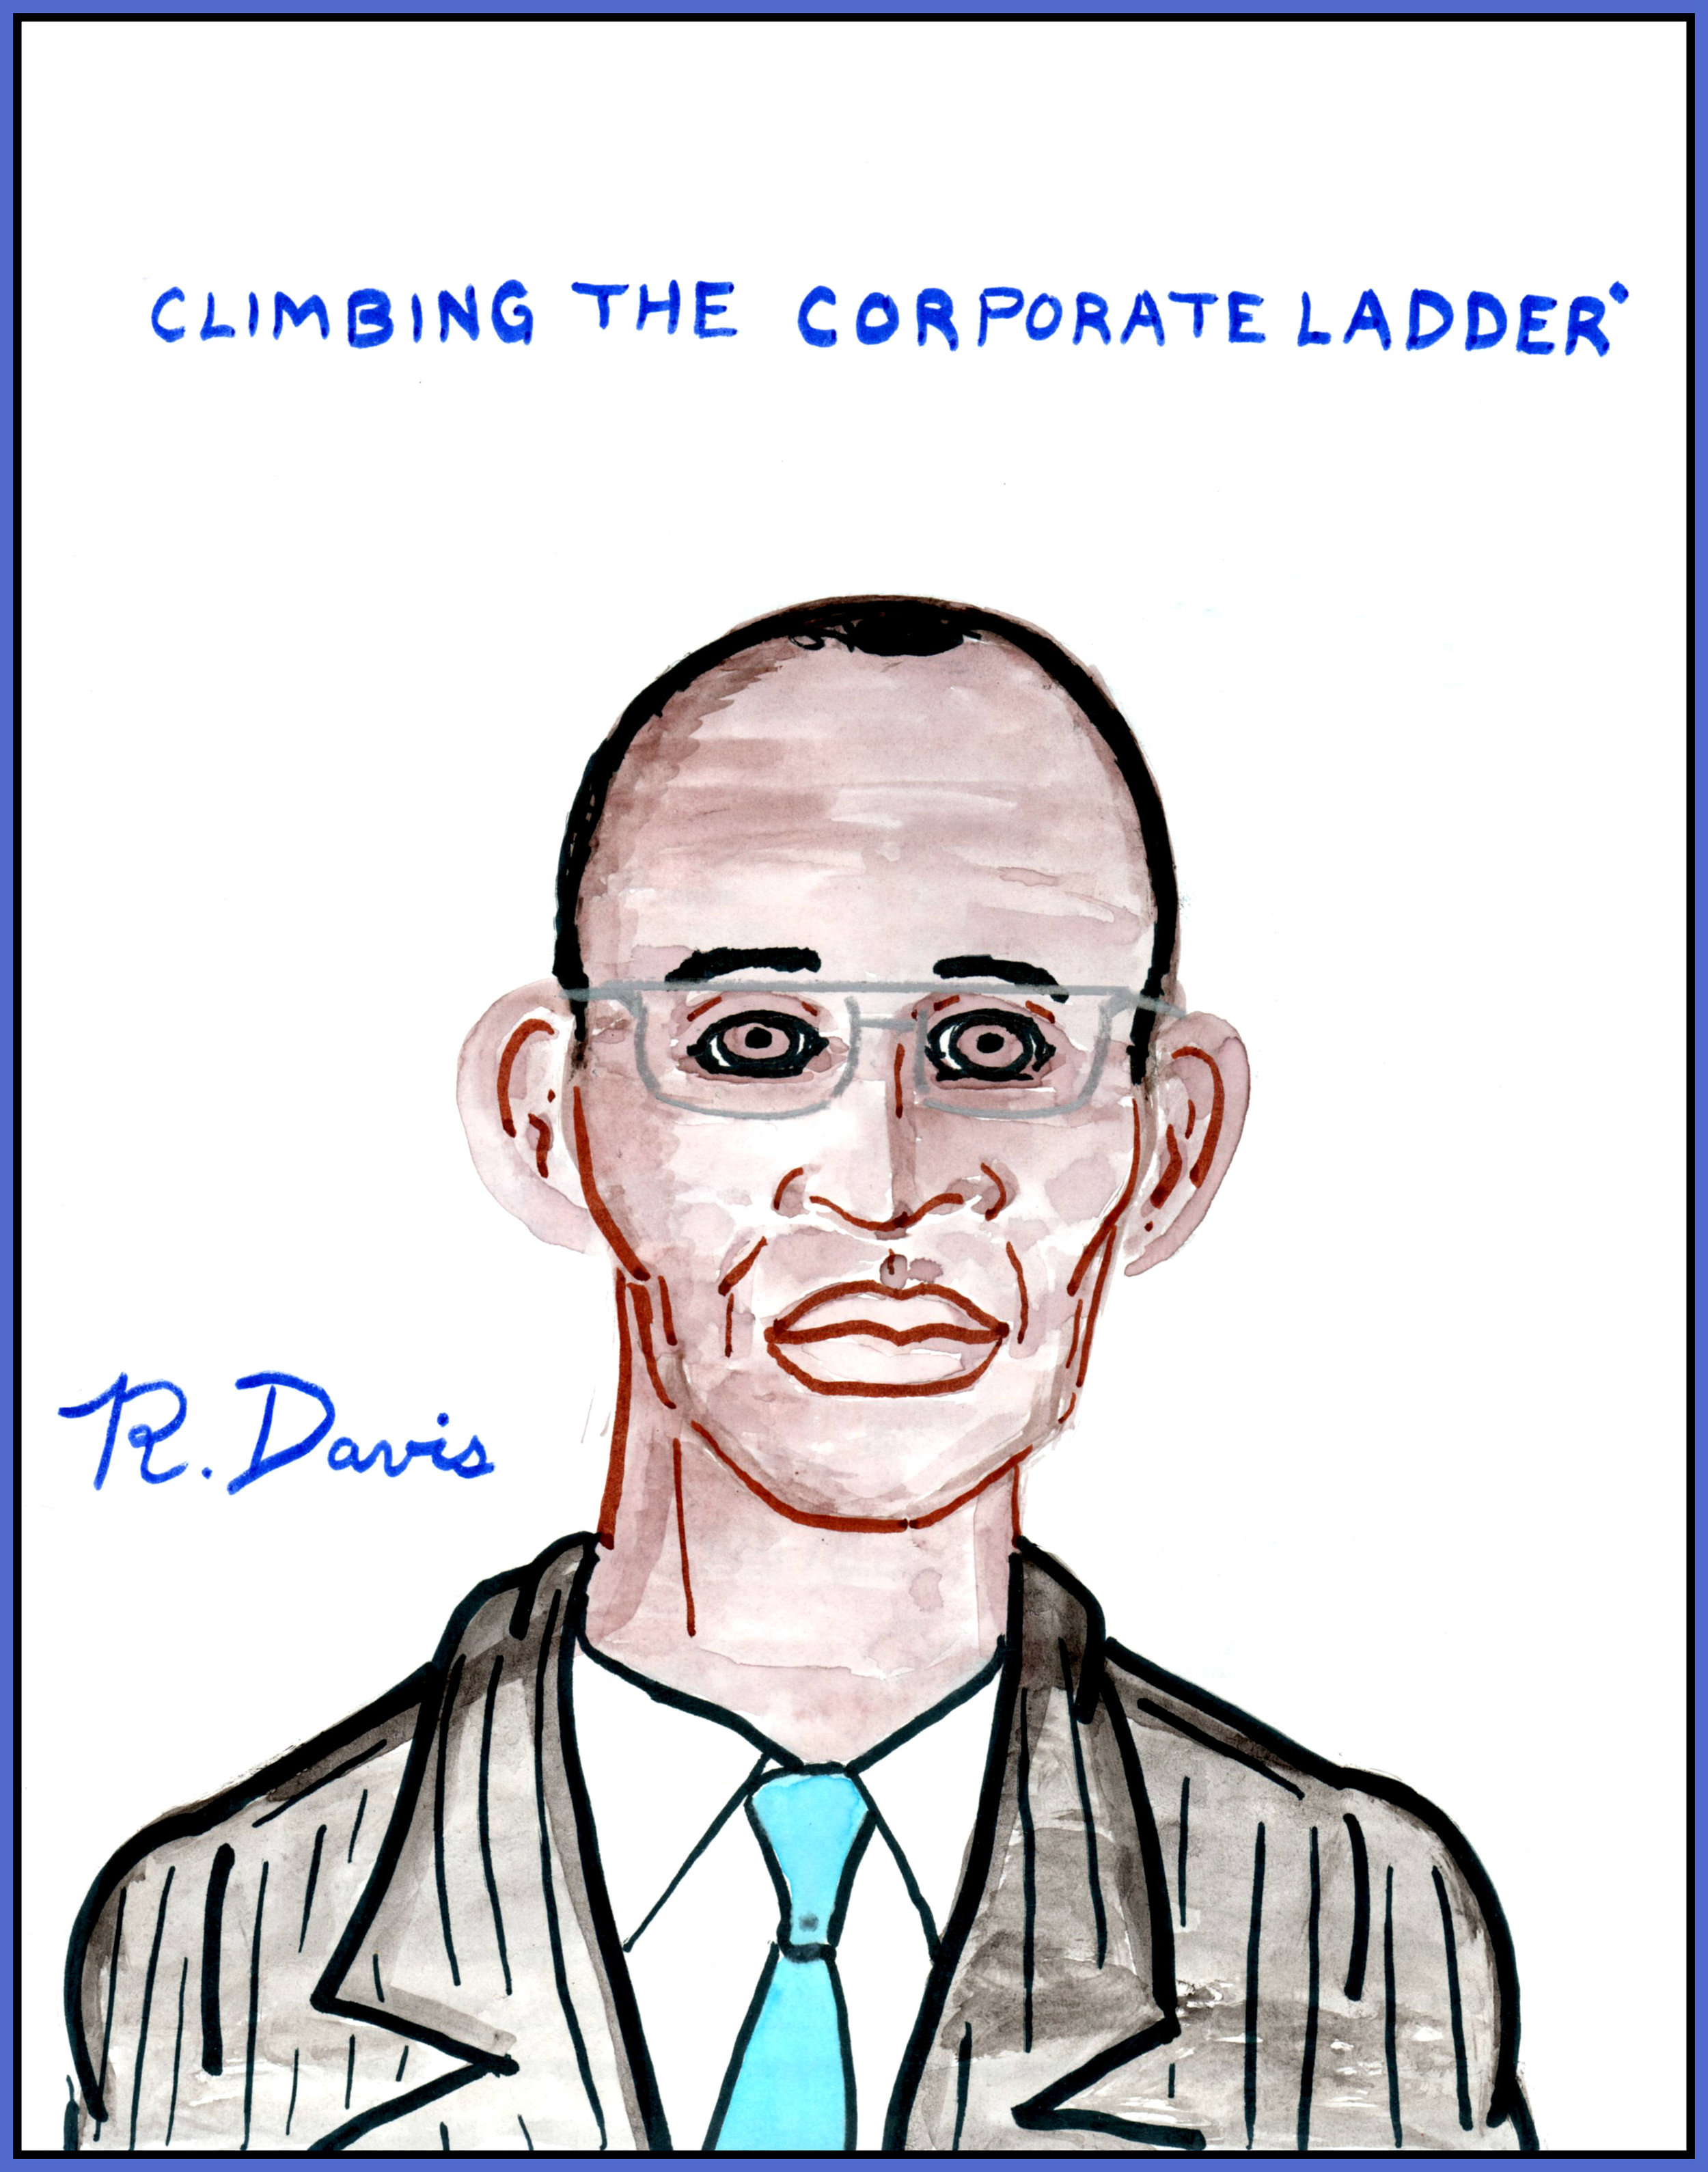 Climbing the Corporate Ladder Ron Davis 2017 Pencil and marker on paper Print $20